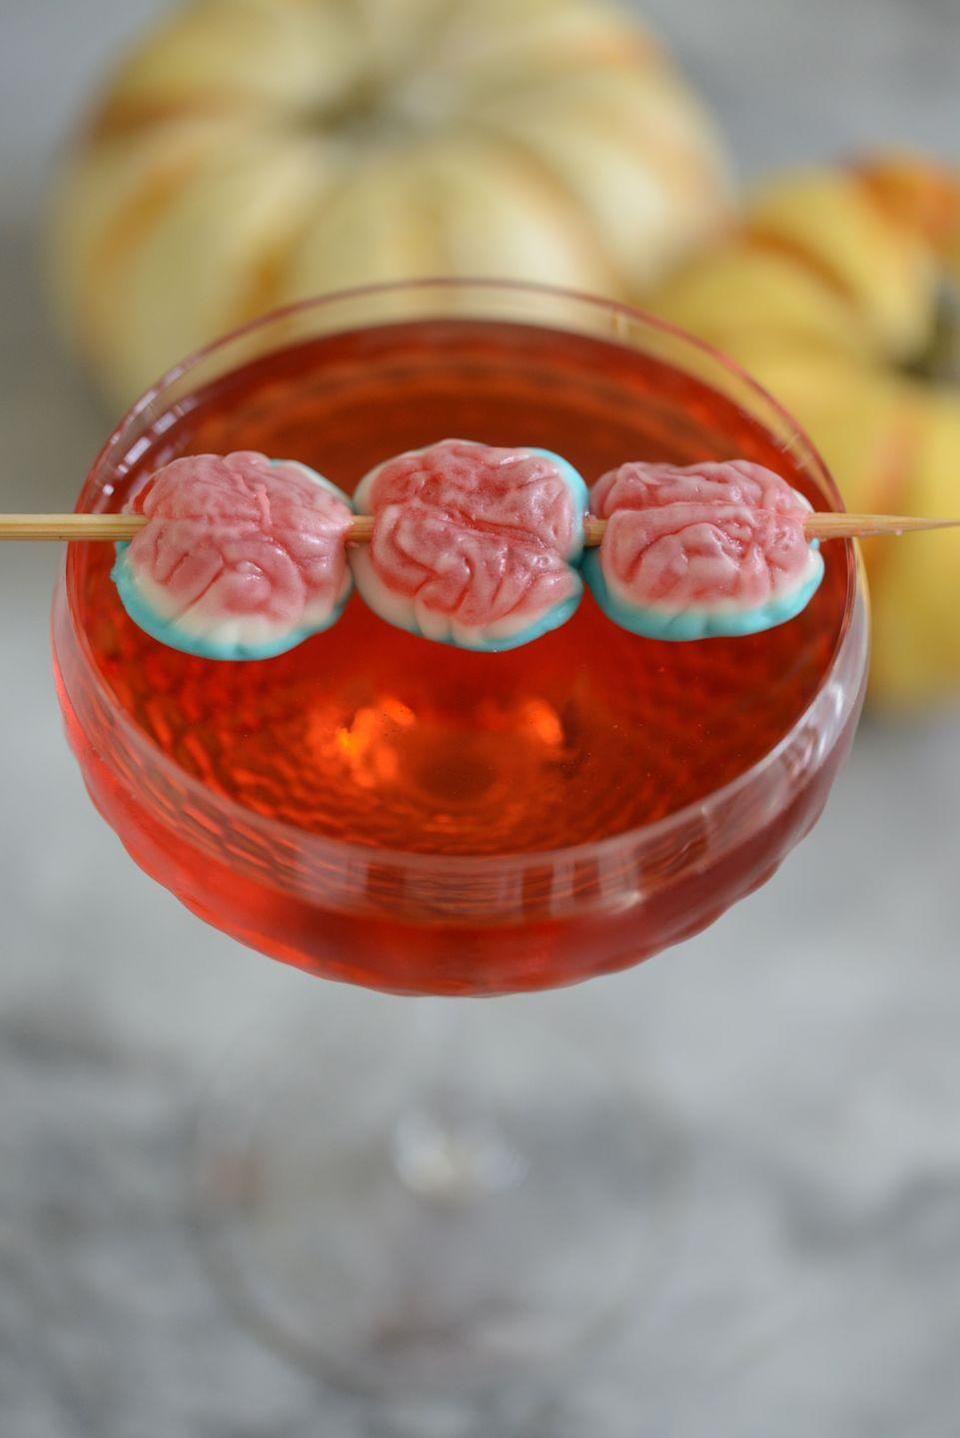 "<p>Up the creep factor of almost any cocktail by adding gummy brain garnishes.</p><p><em><a href=""http://cupcakesandcashmere.com/series-stories/halloween-cocktails"" rel=""nofollow noopener"" target=""_blank"" data-ylk=""slk:Get the recipe from Cupcakes and Cashmere »"" class=""link rapid-noclick-resp"">Get the recipe from Cupcakes and Cashmere »</a></em></p>"